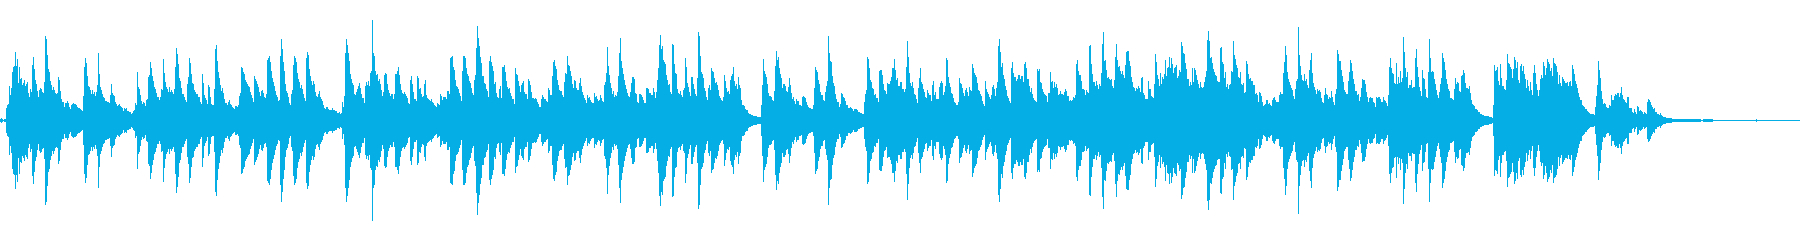 "Piano solo of nursery rhyme ""Sakura Sakura""'s reproduced waveform"